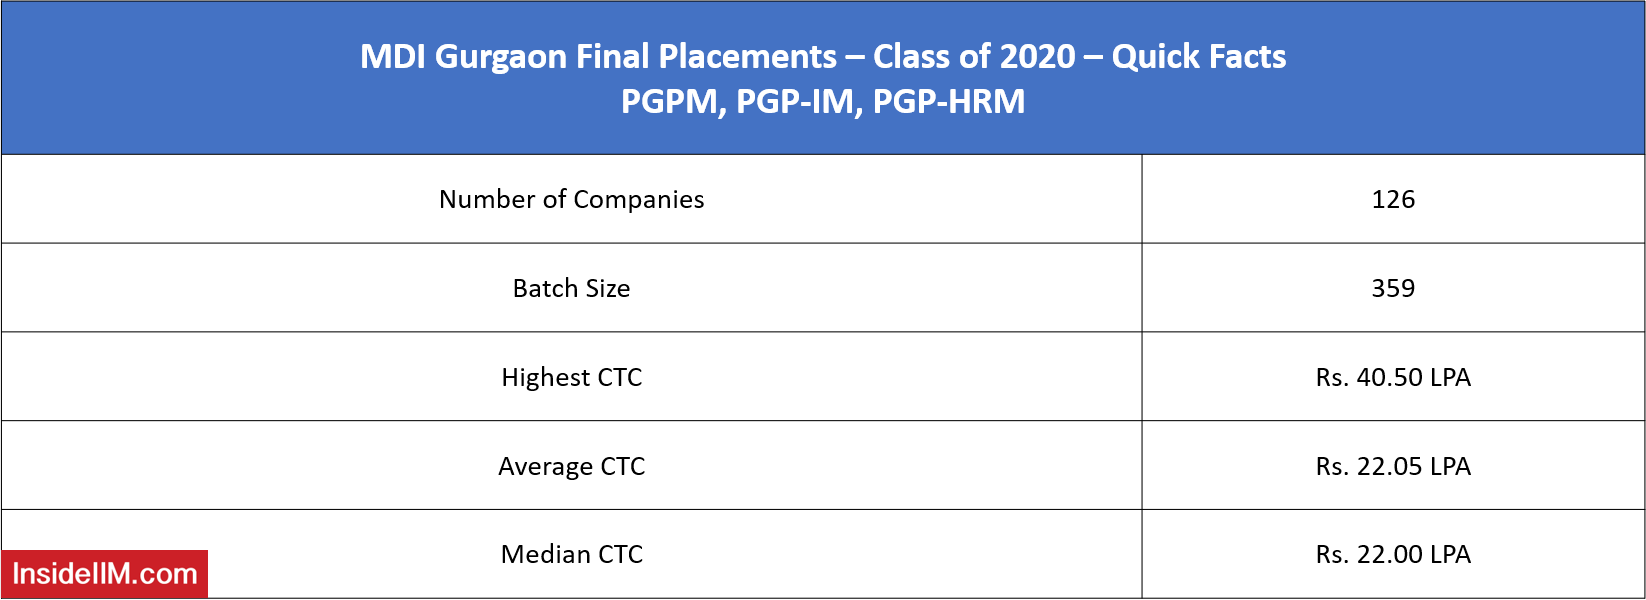 MDI Gurgaon Final Placements 2020 - Important Highlights